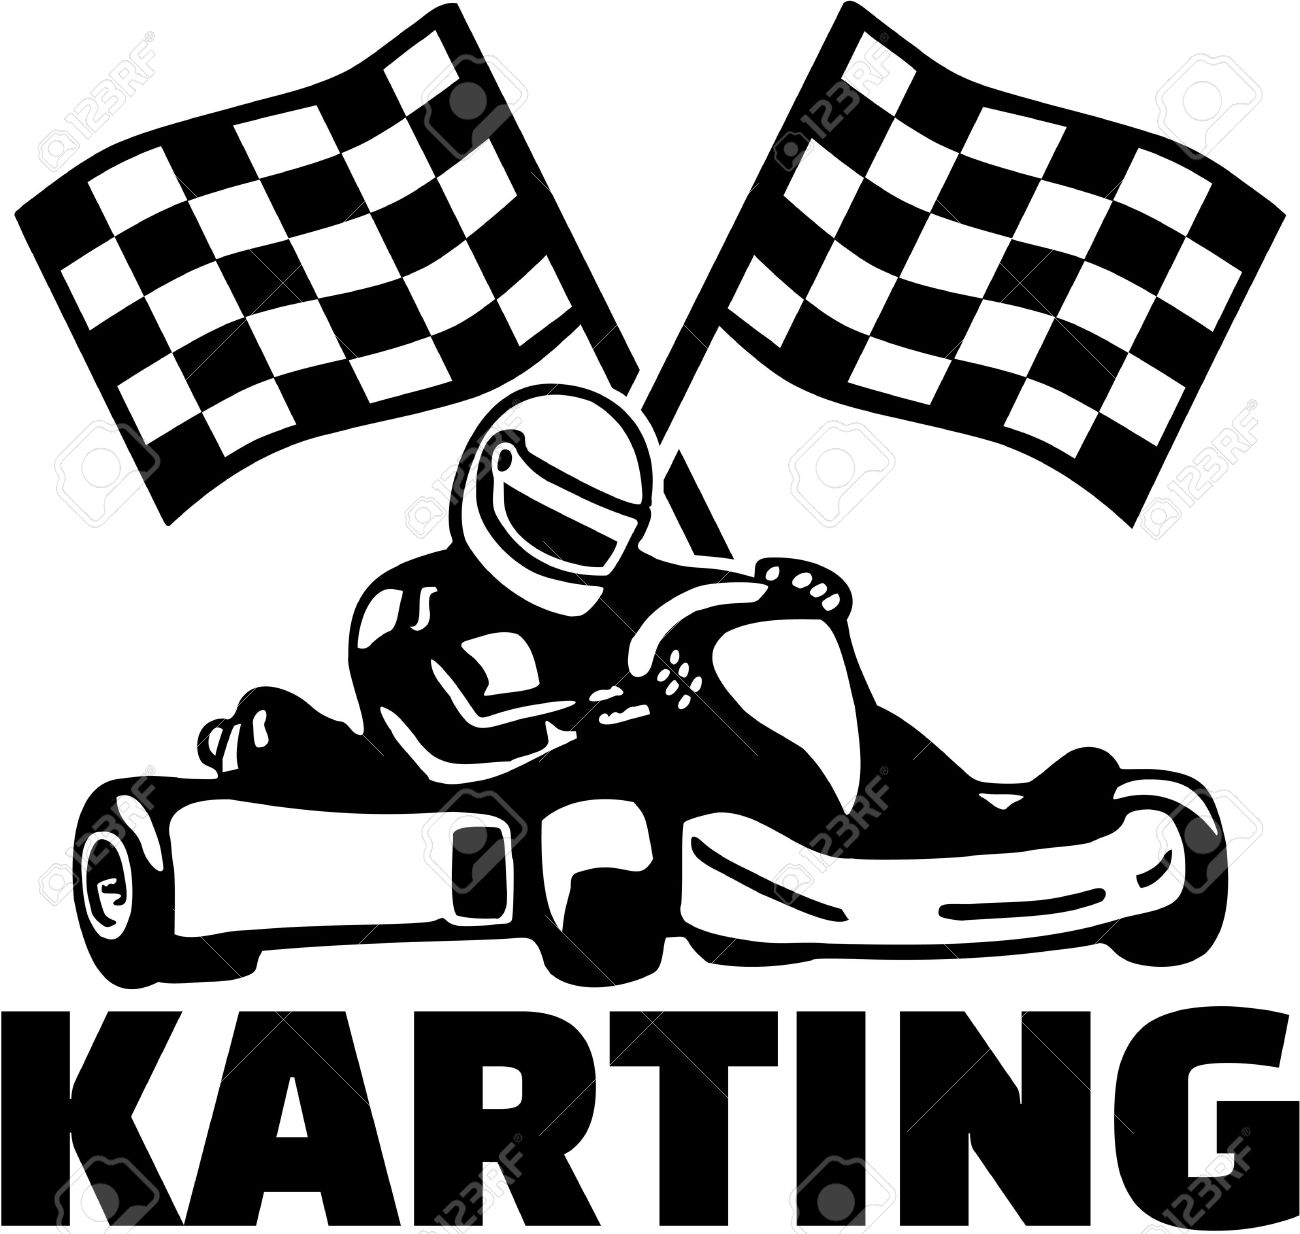 karting with kart driver and goal flags royalty free cliparts Dirt Go Karts karting with kart driver and goal flags stock vector 51818698